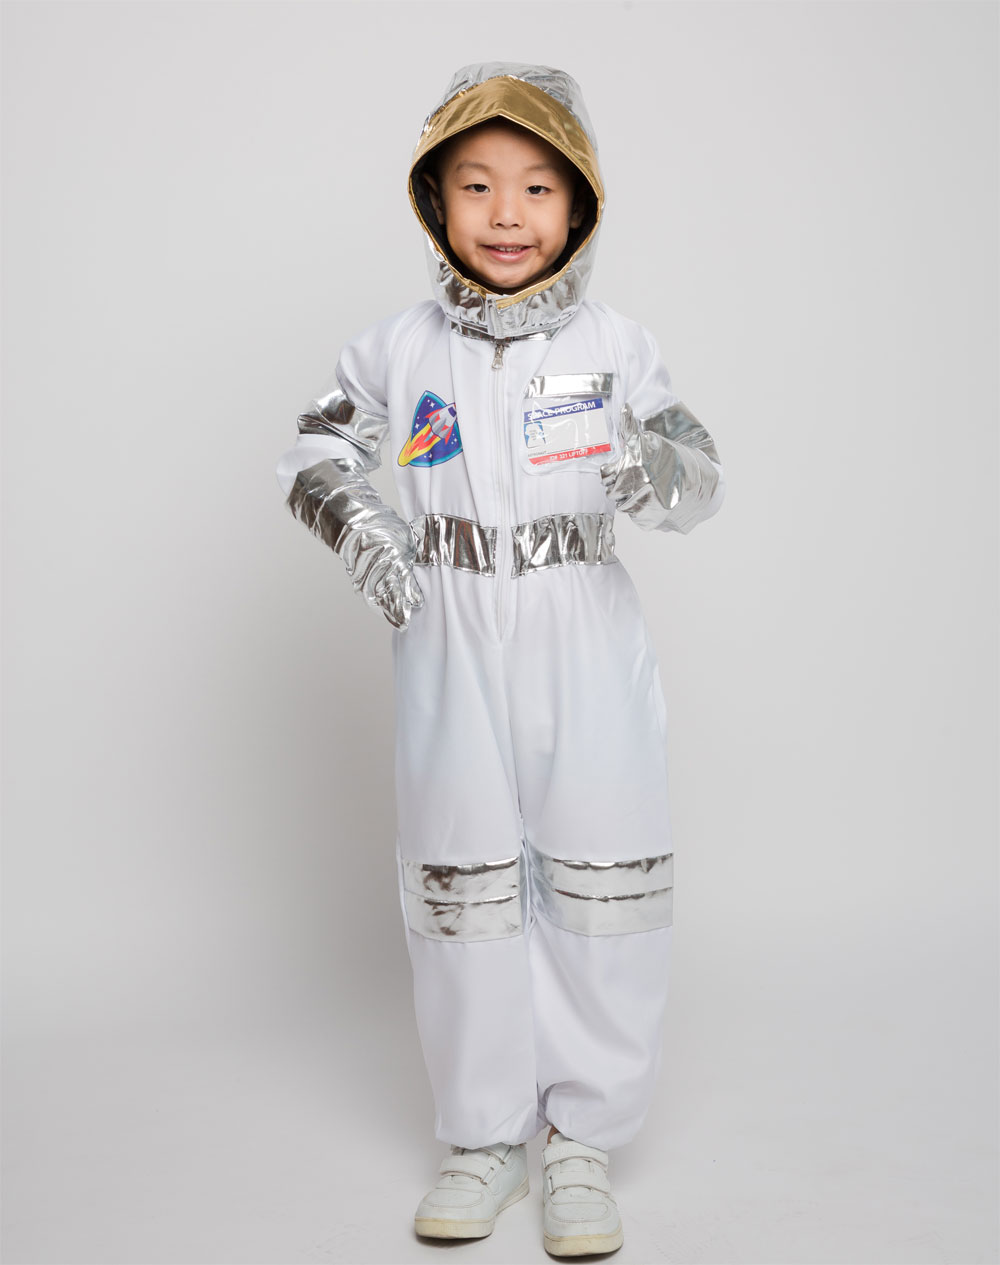 Noucher U Costume Anime Game Jumpsuit Astronaut Space Costume Cosplay Multicolor Bodysuit Set Role Play for Kids Children